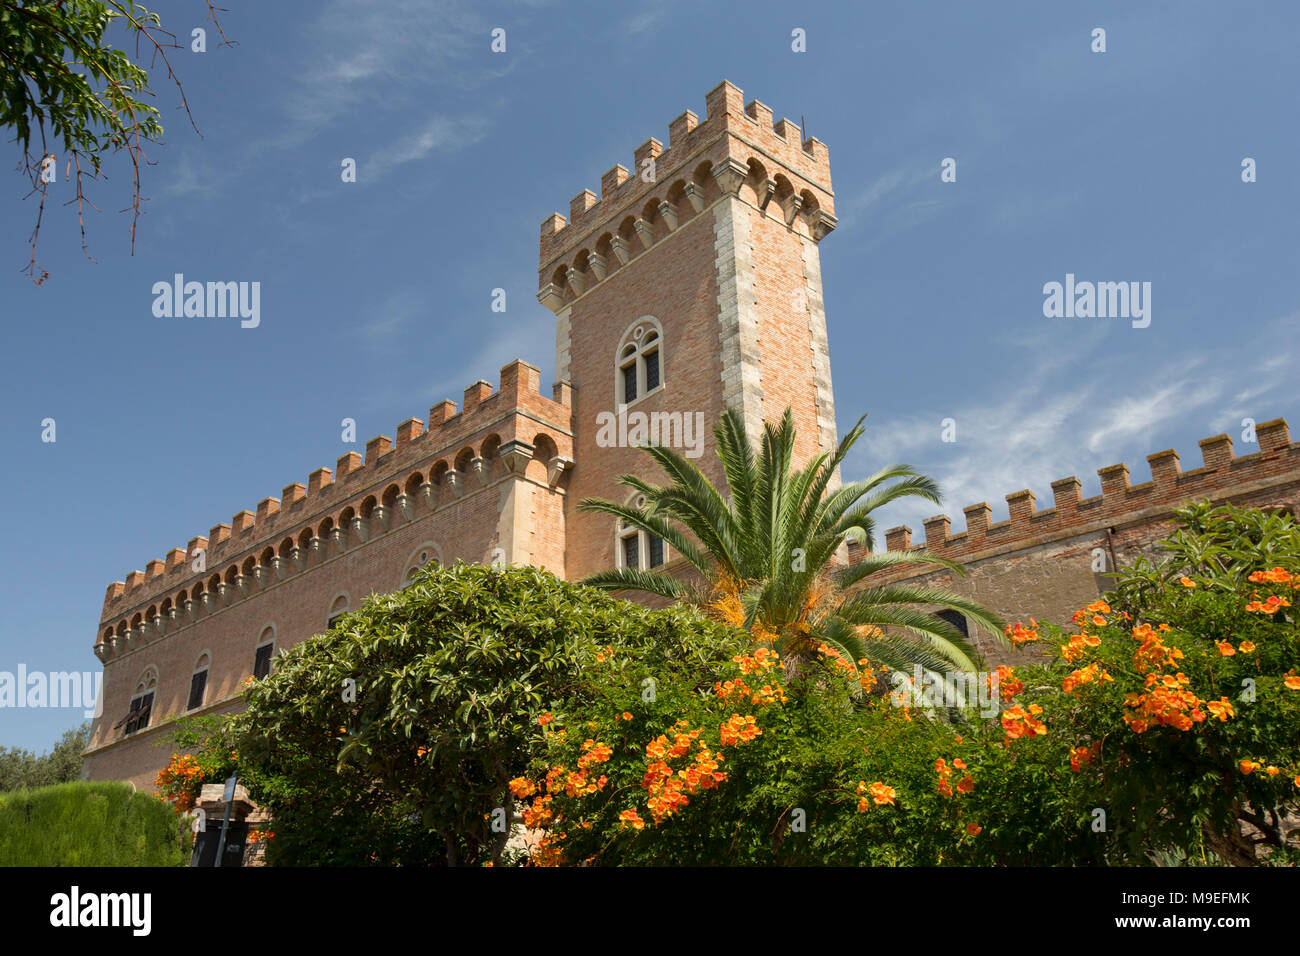 Part of Bolgheri castle Tuscany Italy. The area is noted for its wine production. Stock Photo